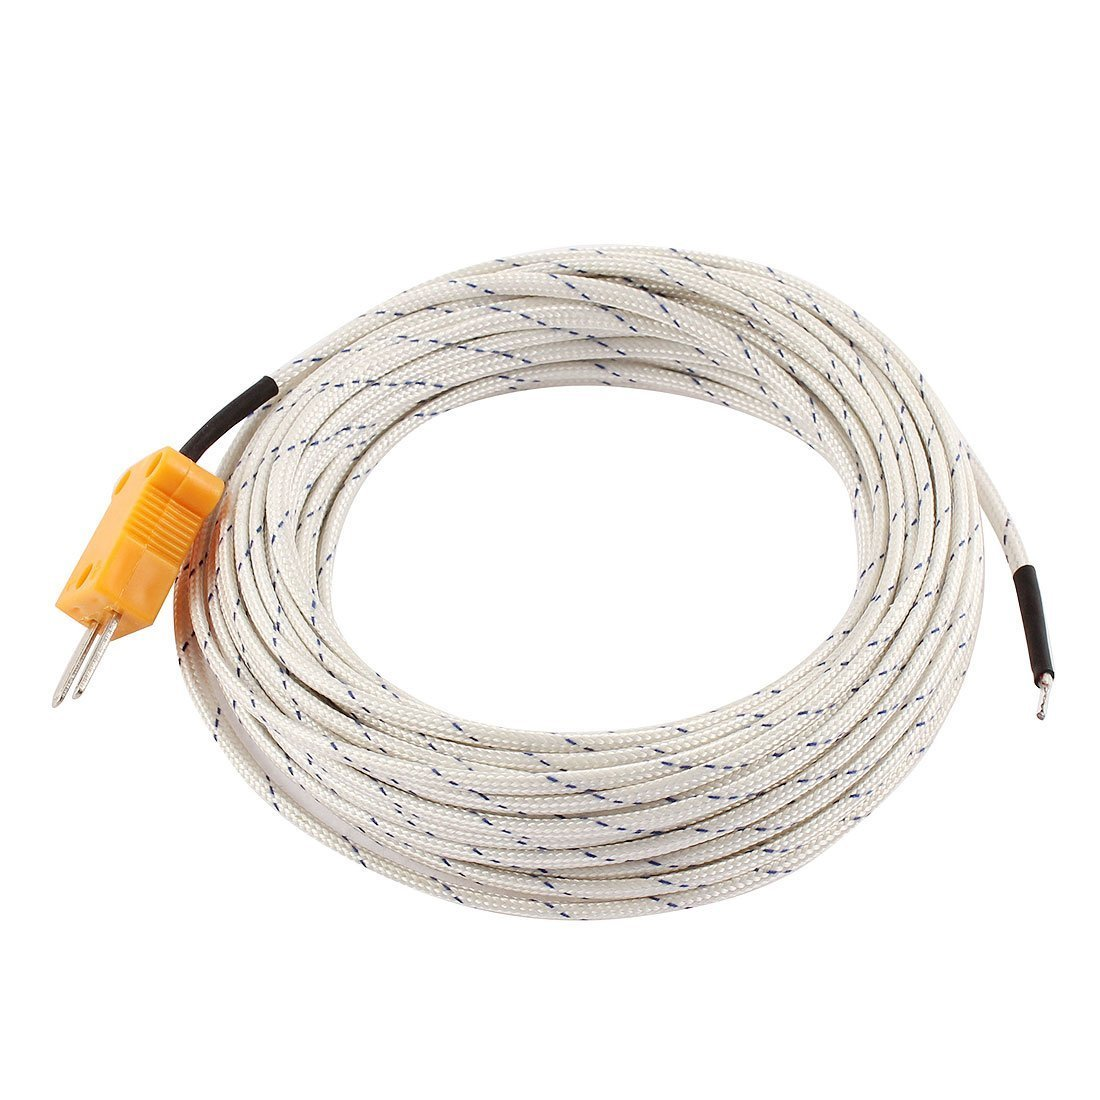 Uxcell a15050400ux0361 K Type 180C Wire Lead Thermocouple Sensor Probe 10M 33ft 50C to